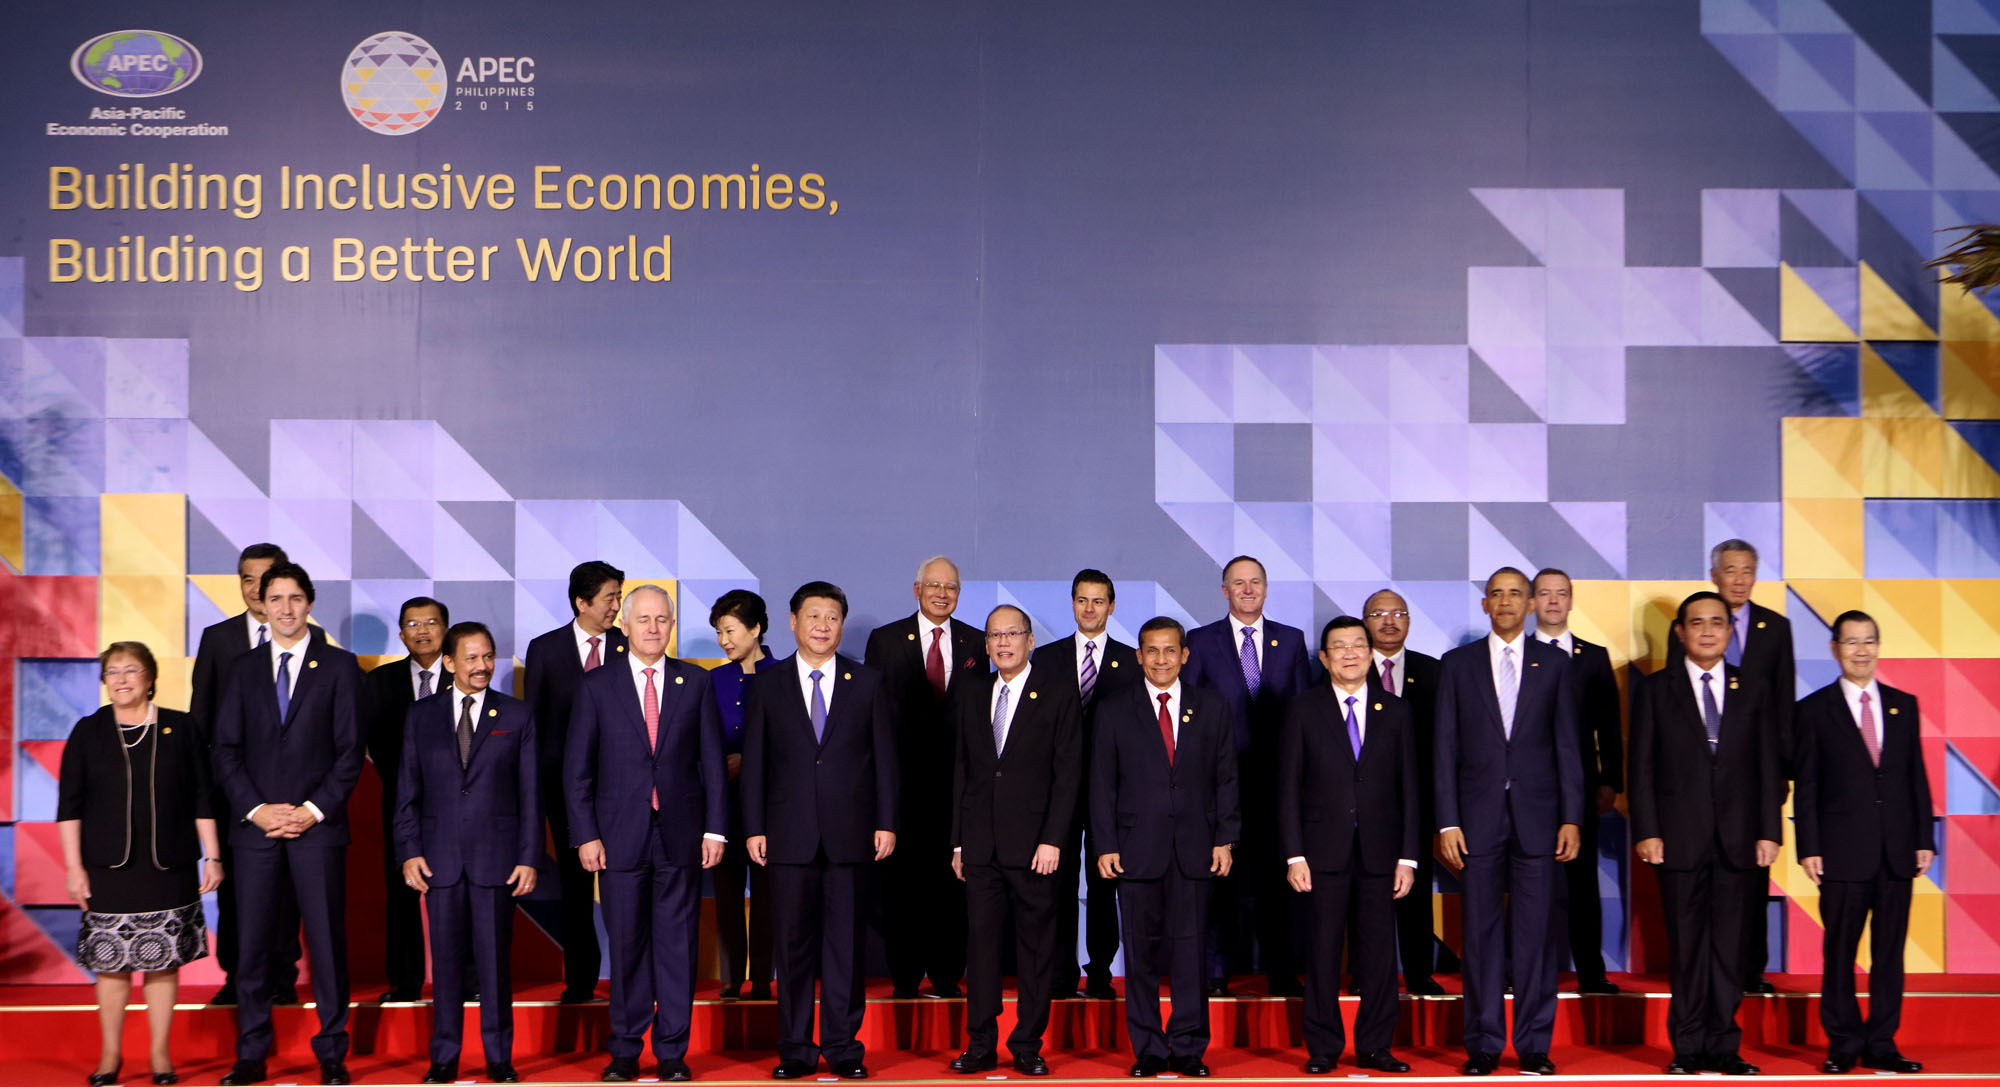 APEC 2015 chairman President Benigno S. Aquino III (6th from left) joins fellow APEC leaders (from left, front row): Republic of Chile President Michelle Bachelet; Canadian Prime Minister Justin Trudeau; Brunei Darussalam Prime Minister Sultan Hassanal Bolkiah; Commonwealth of Australia Prime Minister Malcolm Turnbull; People's Republic of China President Xi Jinping; Republic of Peru President Ollanta Humala; Socialist Republic of Vietnam President Truong Tan Sang; United States of America President Barack Obama; Kingdom of Thailand Prime Minister General Prayut Chan-o-Cha; and Chinese Taipei former Vice President Vincent Siew. (Back row, from left) Hong Kong Chief Executive CY Leung; Republic of Indonesia Vice President Jusuf Kalla; Japanese Prime Minister Shinzo Abe; Republic of Korea President Park Geun-hye; Malaysian Prime Minister Najib Razak; United Mexican States President Enrique Peu00f1a Nieto; New Zealand Prime Minister John Key; Independent State of Papua New Guinea Prime Minister Peter O'Neill; Russian Federation Prime Minister Dmitry Medvedev; and Republic of Singapore Prime Minister Lee Hsien Loong. Photo by Rey Baniquet / Malacau00f1ang Photo Bureau